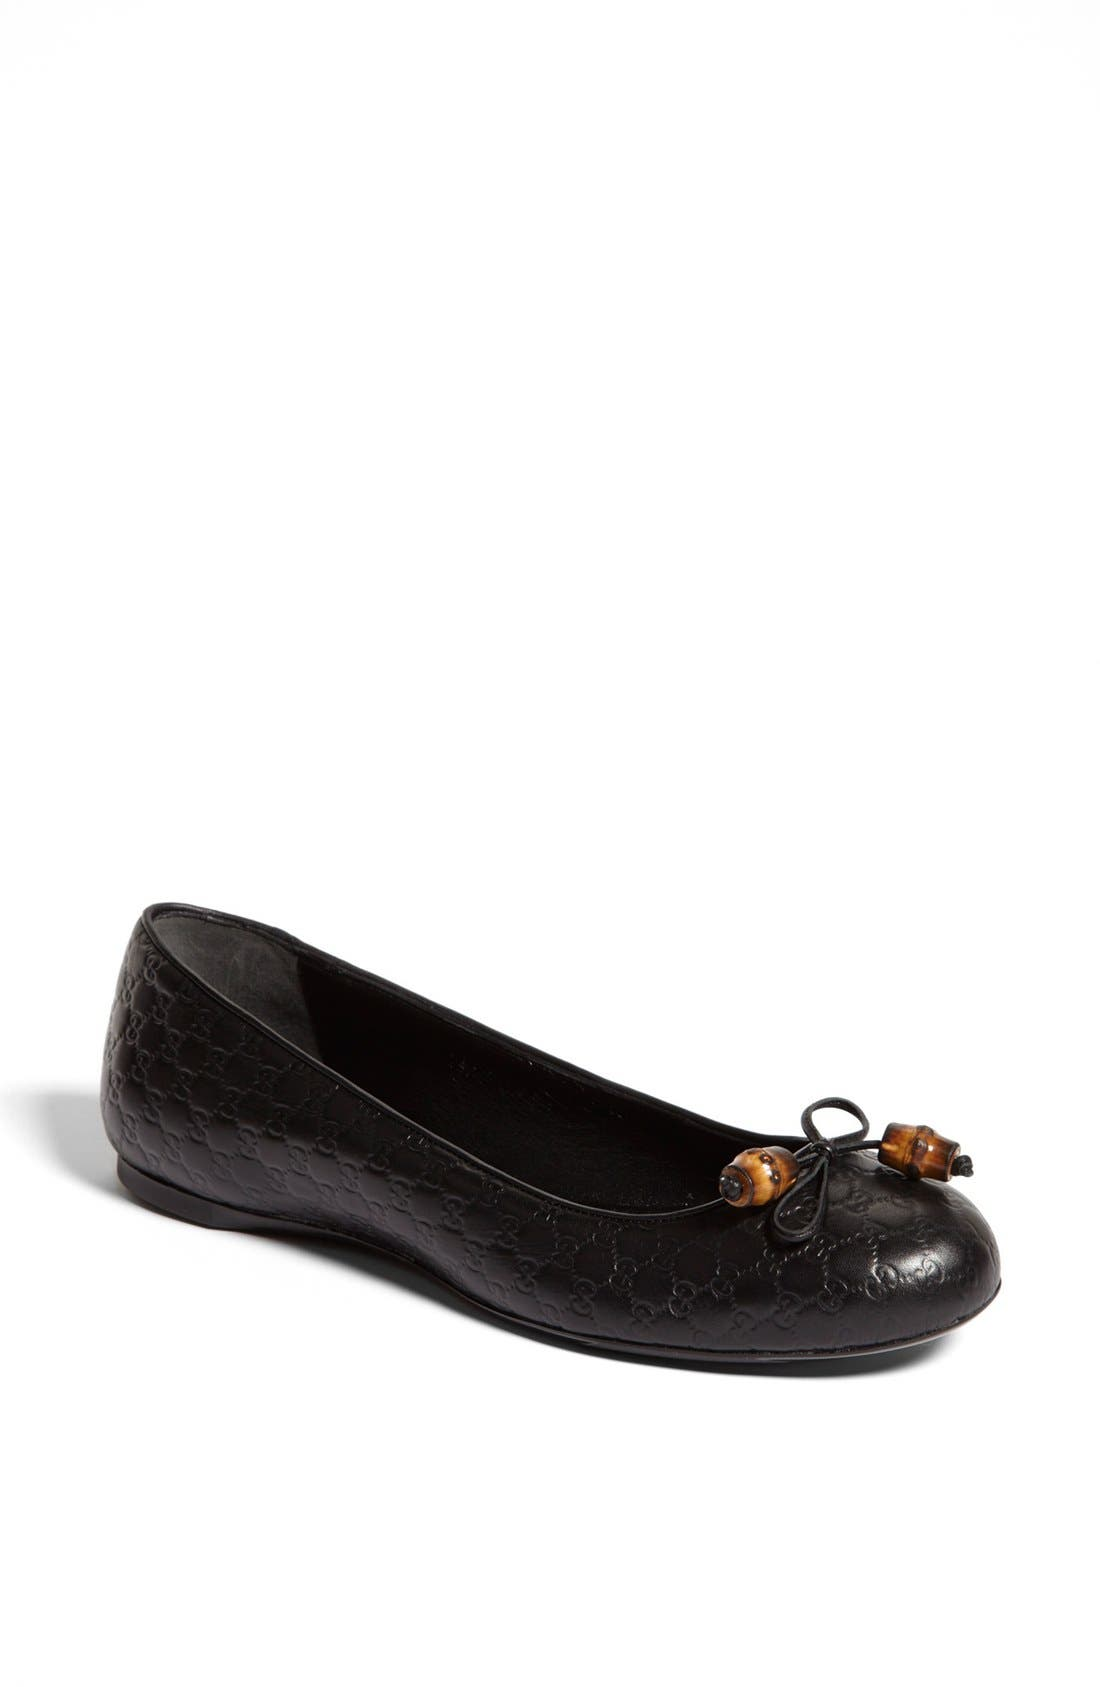 Alternate Image 1 Selected - Gucci 'Sylvie' Bamboo Bow Ballet Flat